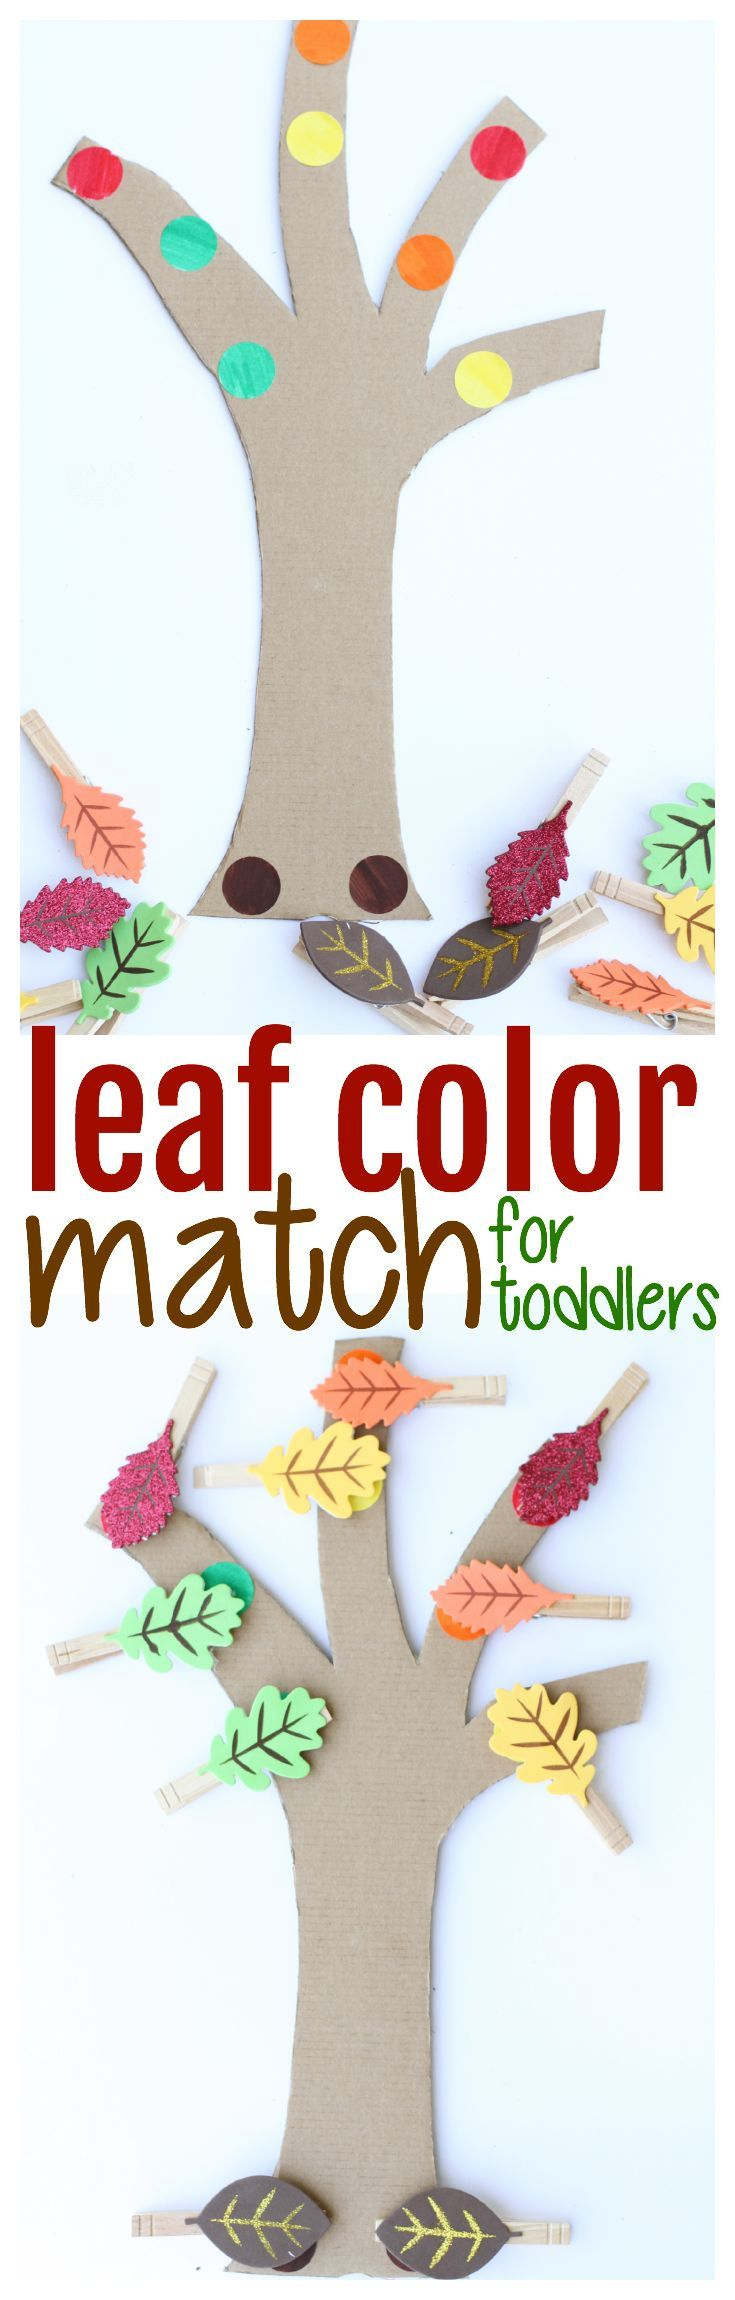 17 Best images about Fall Crafts and Activities on Pinterest ...